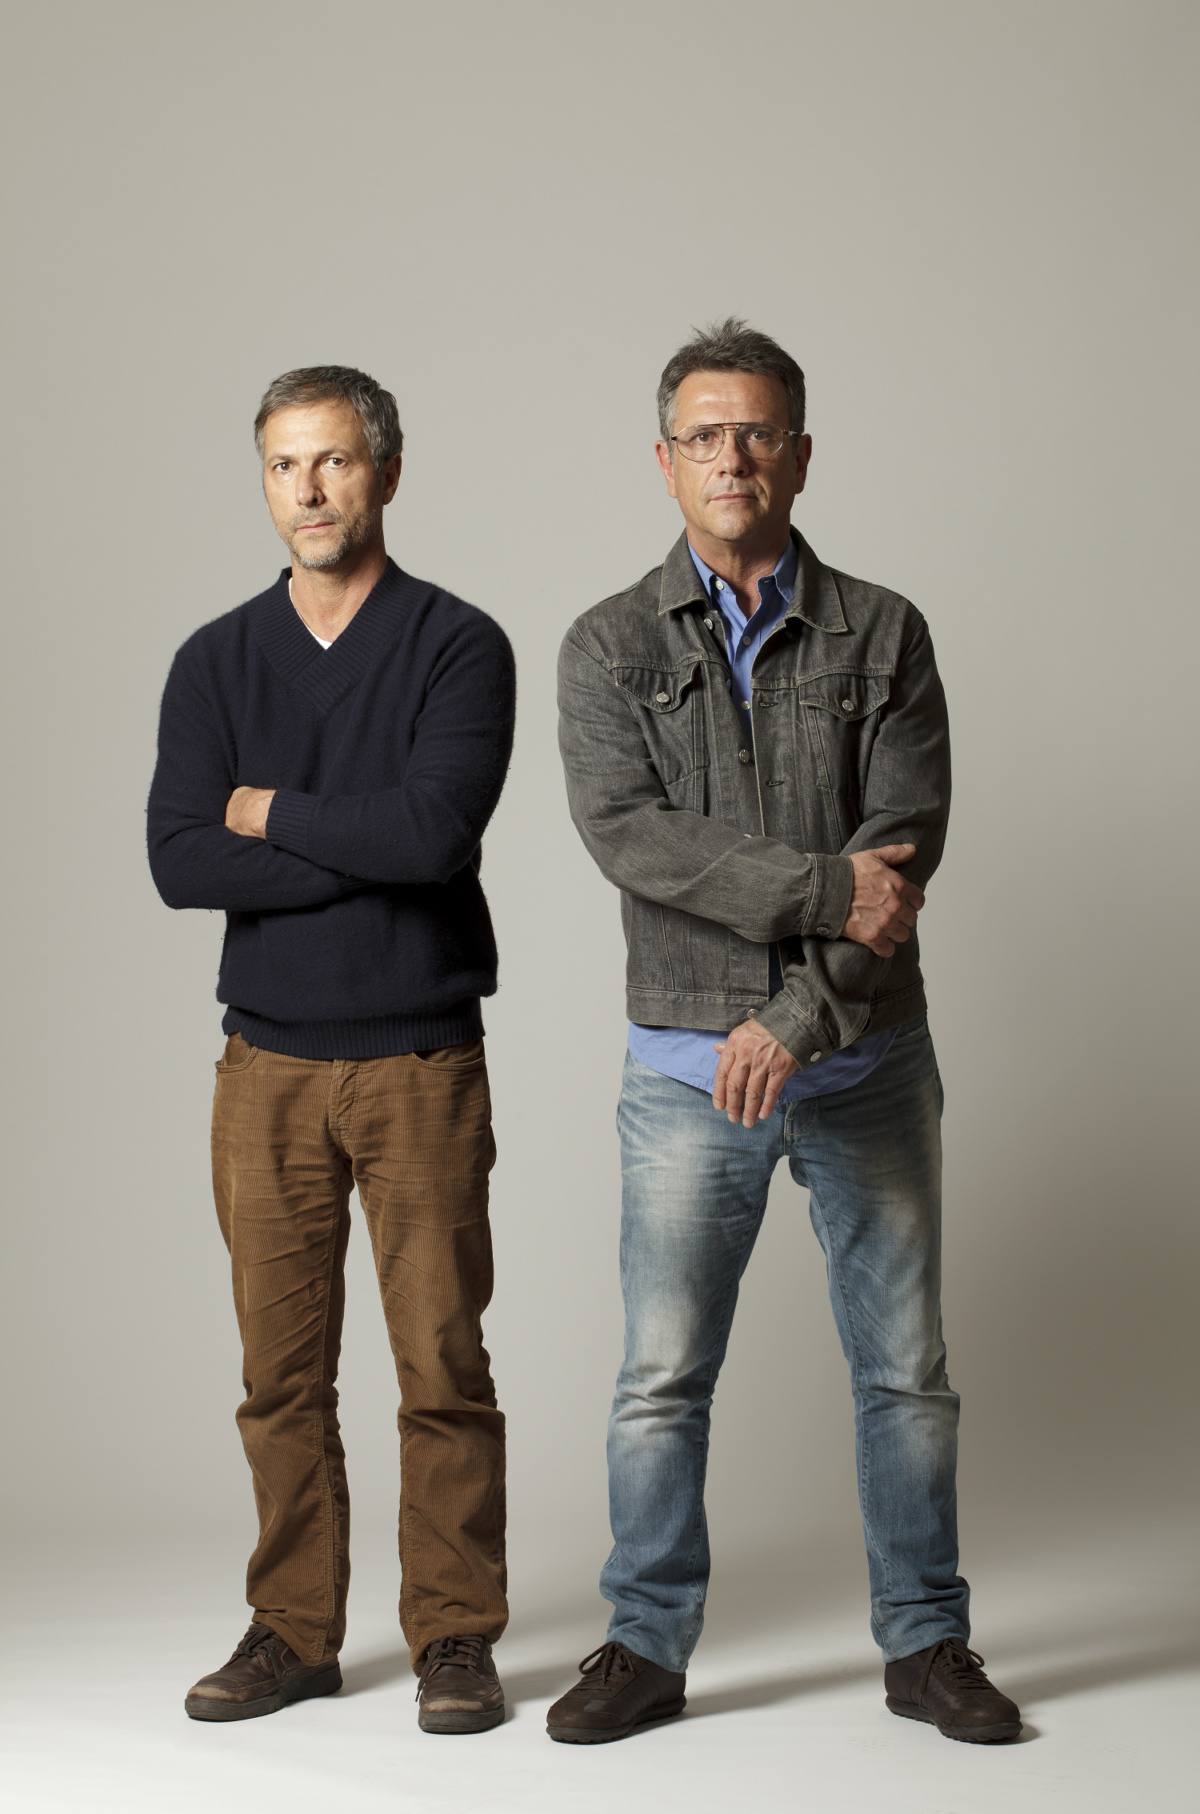 The brothers Fernando and Humberto Campana, the founding partners of the Estudio Campana in Sao Paulo, Brazil